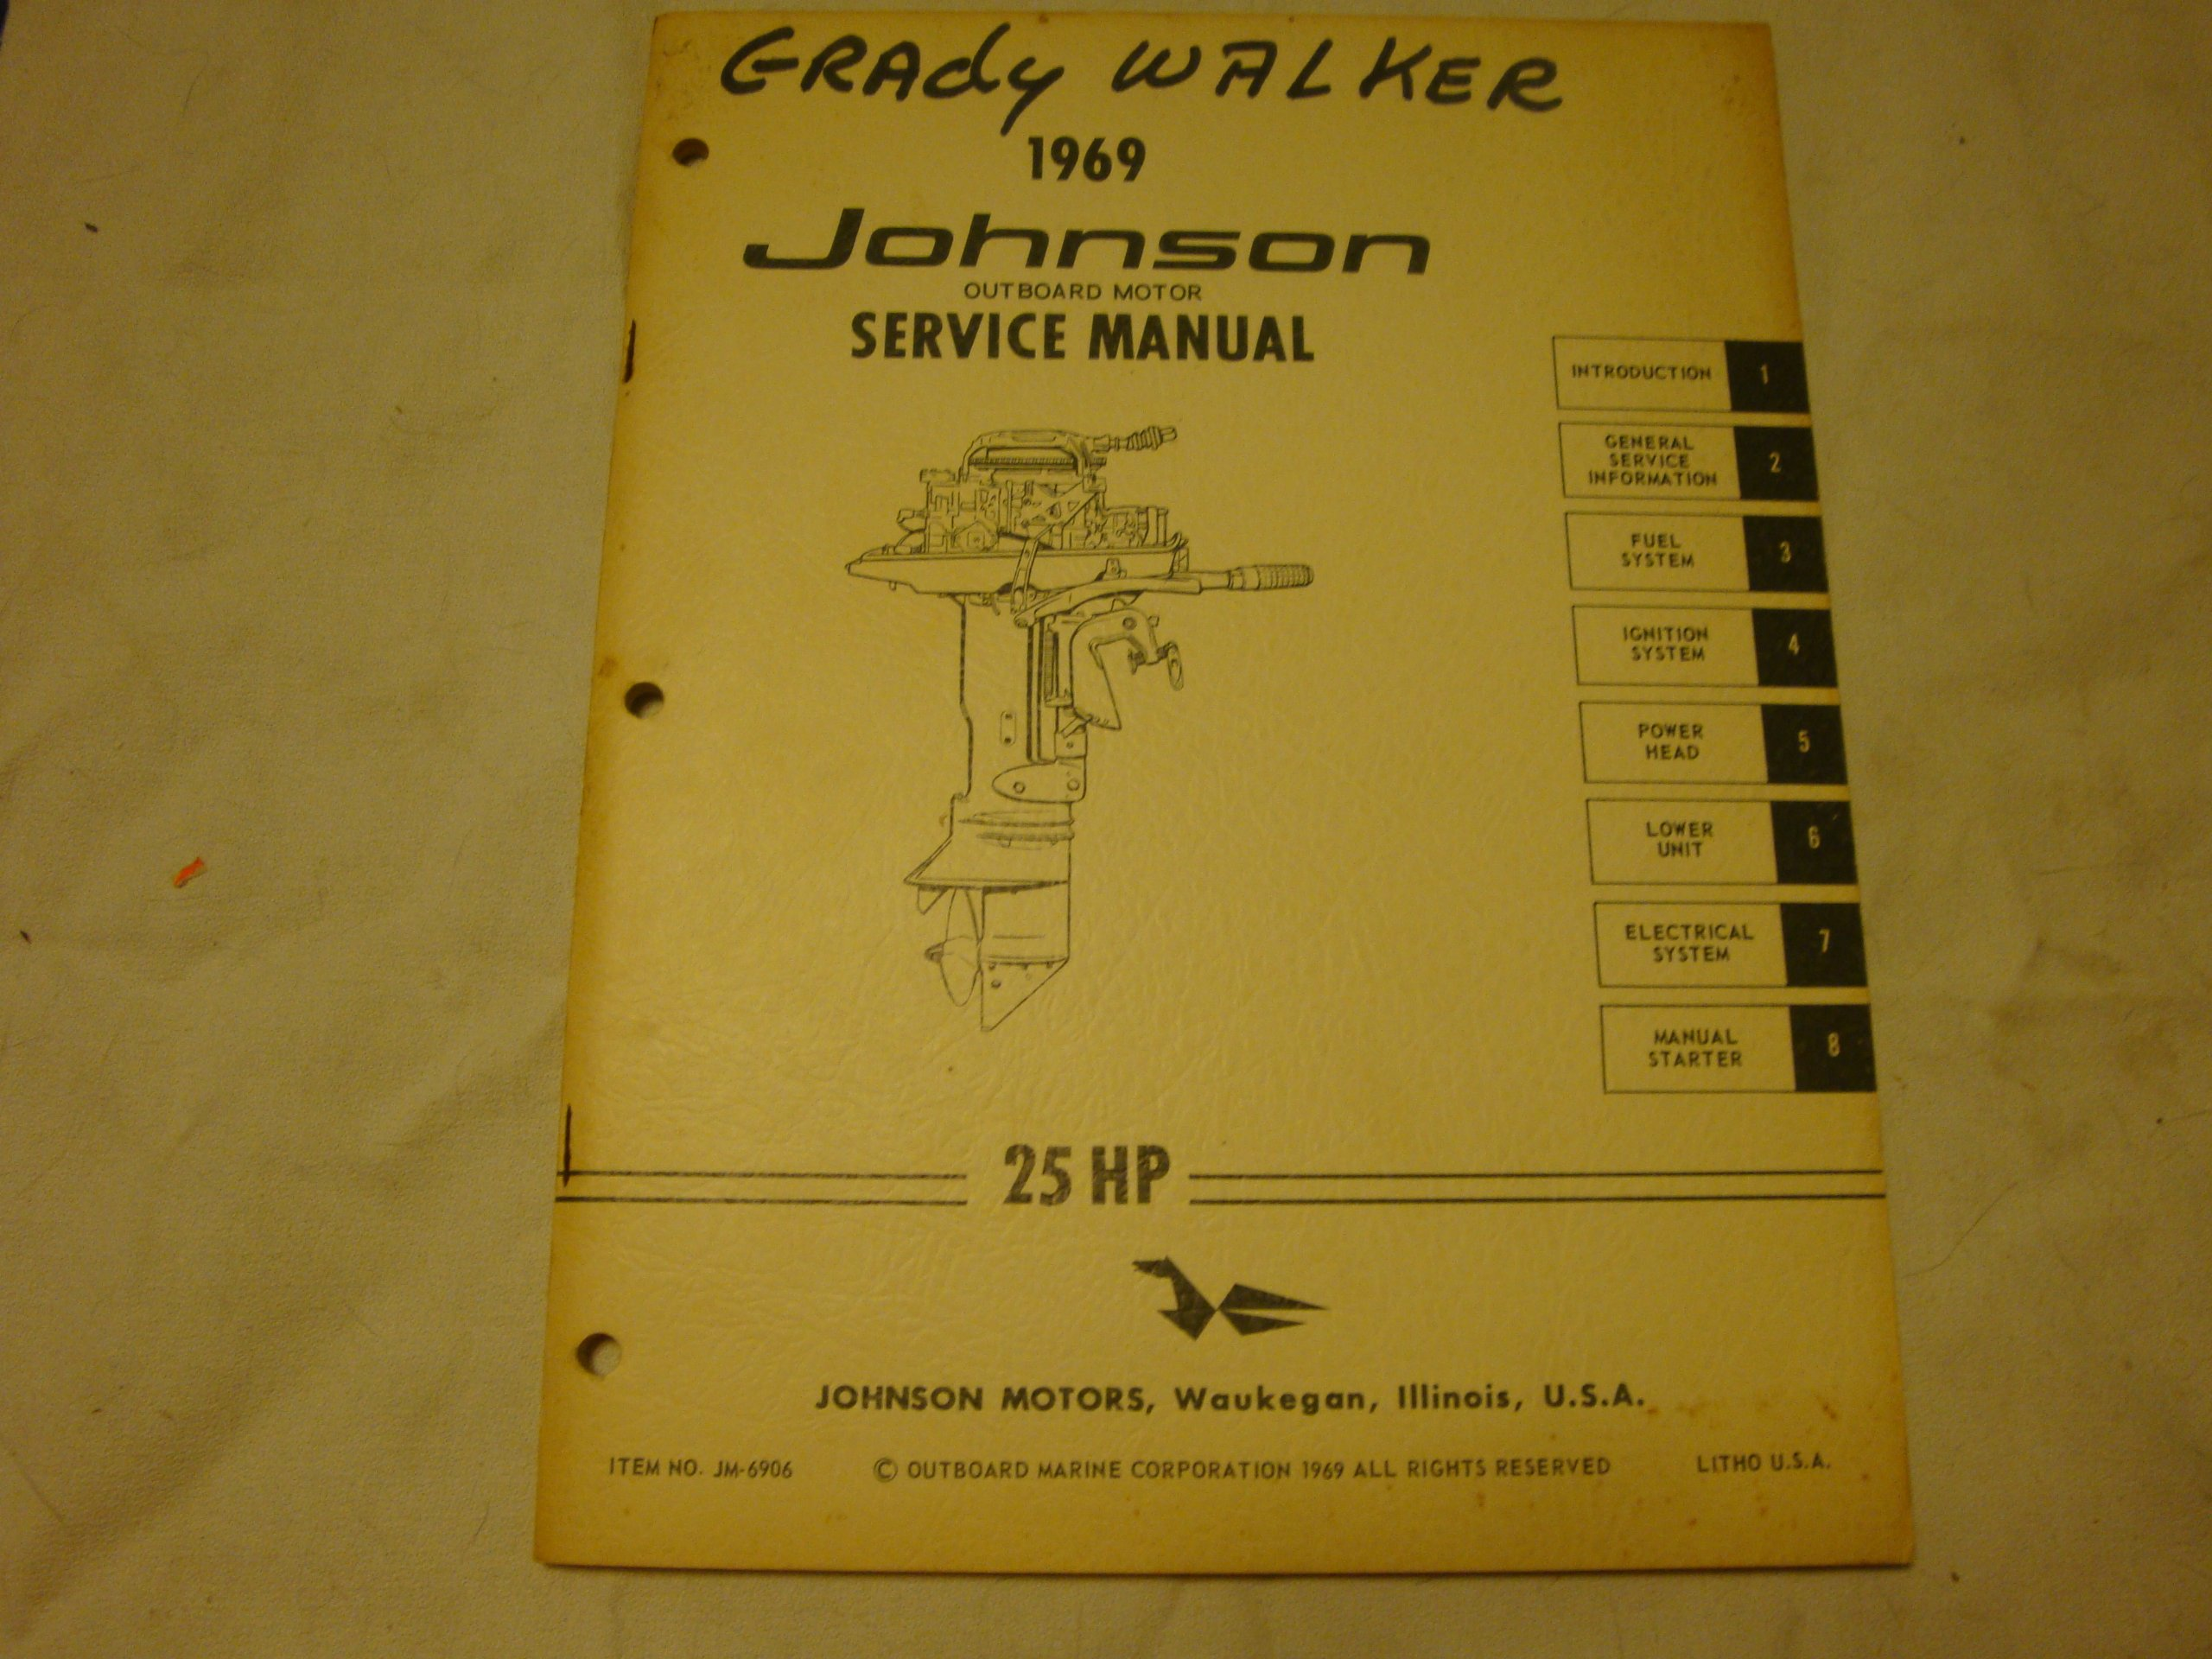 1969 johnson outboard motor service manual 25 hp staple bound – 1969